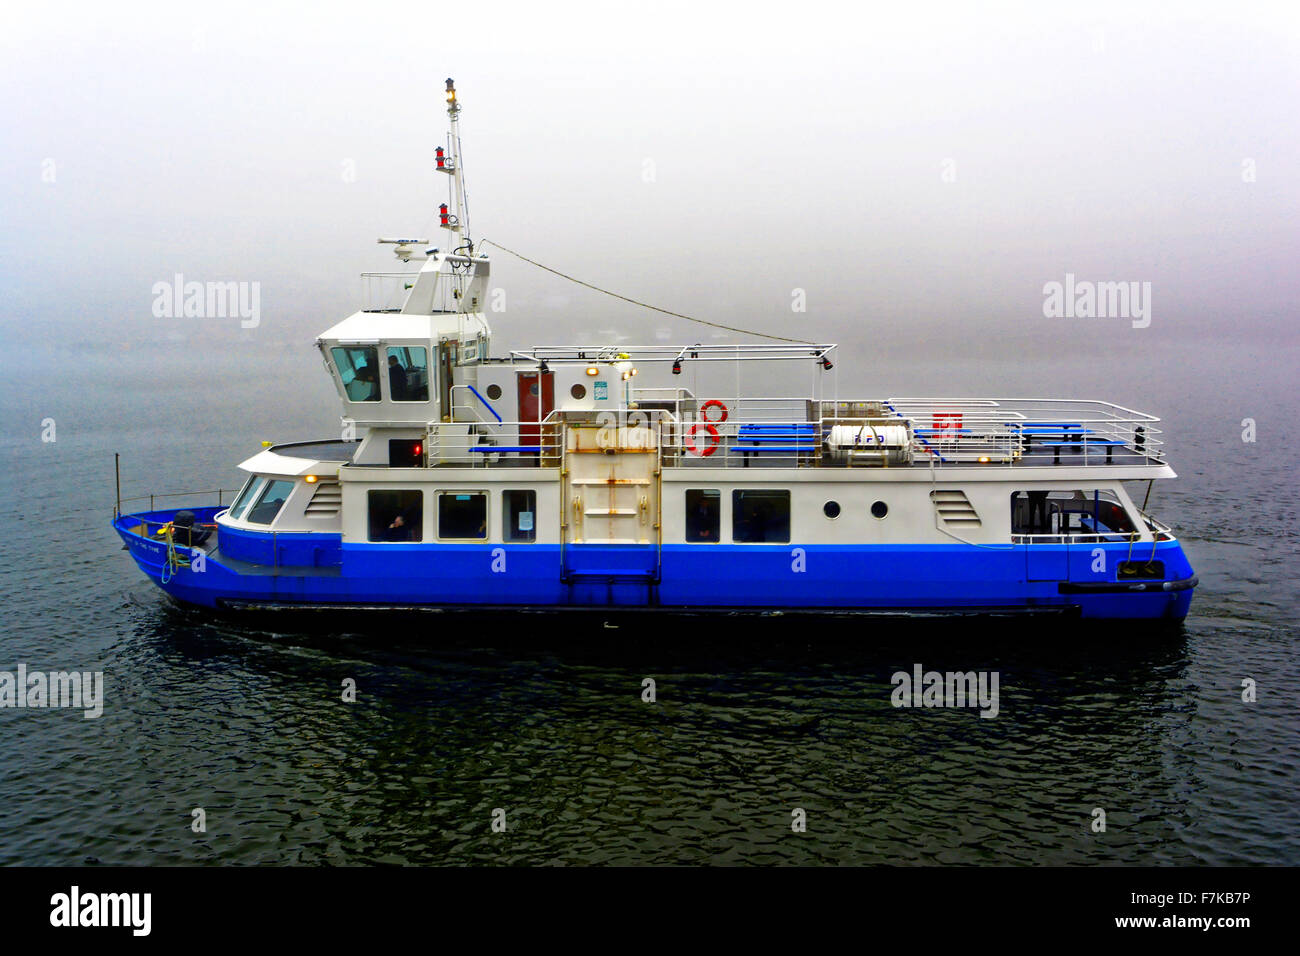 Spirit of the Tyne ferry boat on River Tyne between North Shields and South Shields Stock Photo